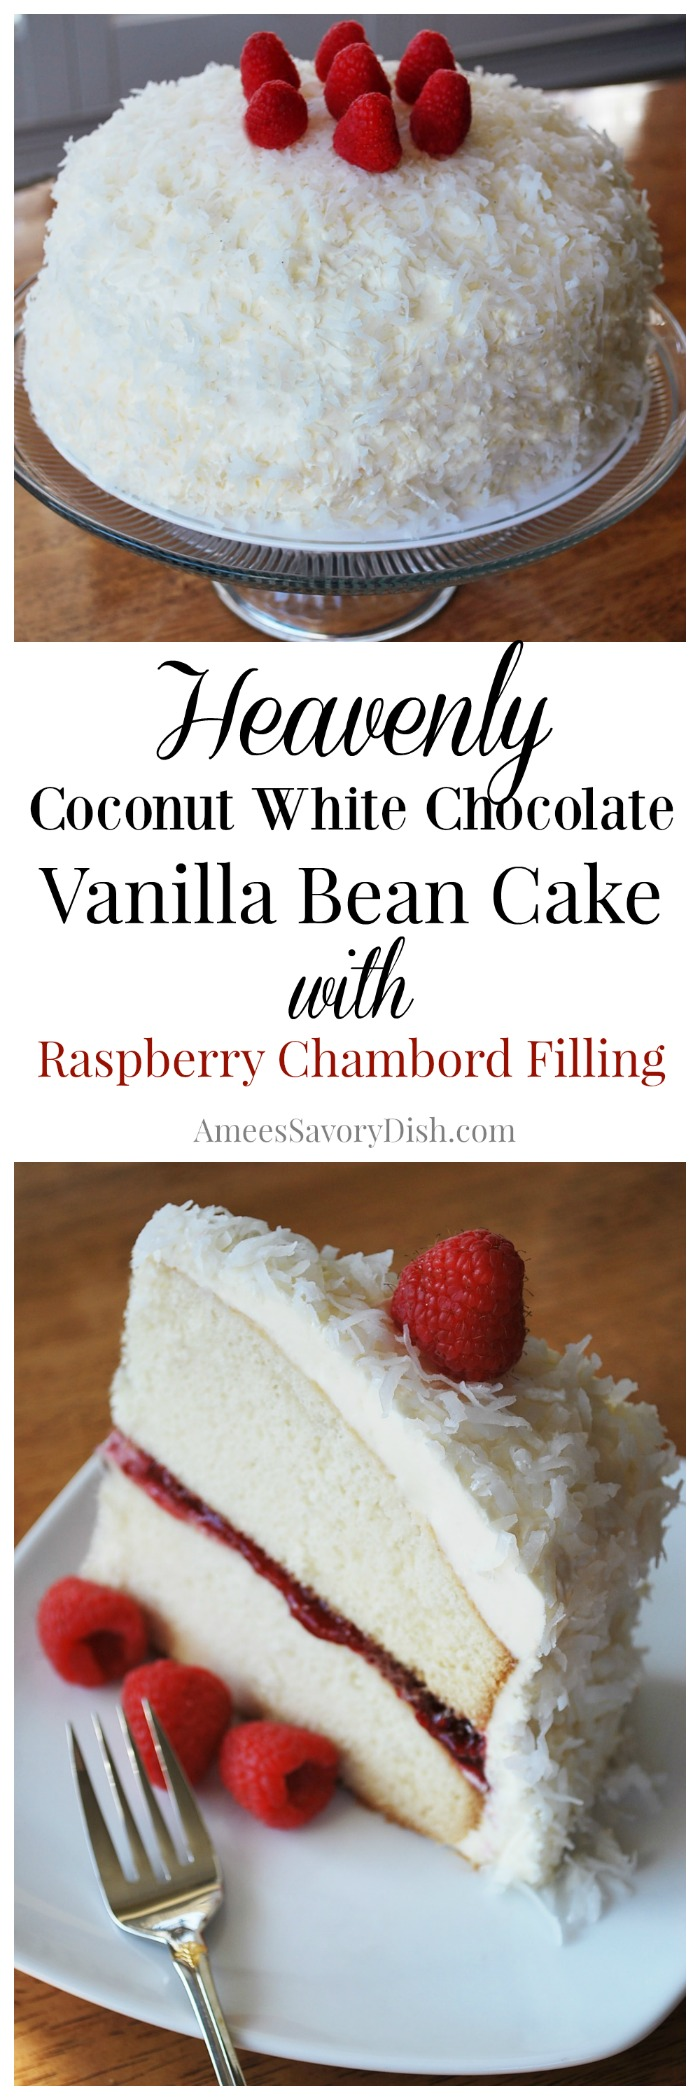 vanilla bean cake with raspberry chambord filling and coconut frosting